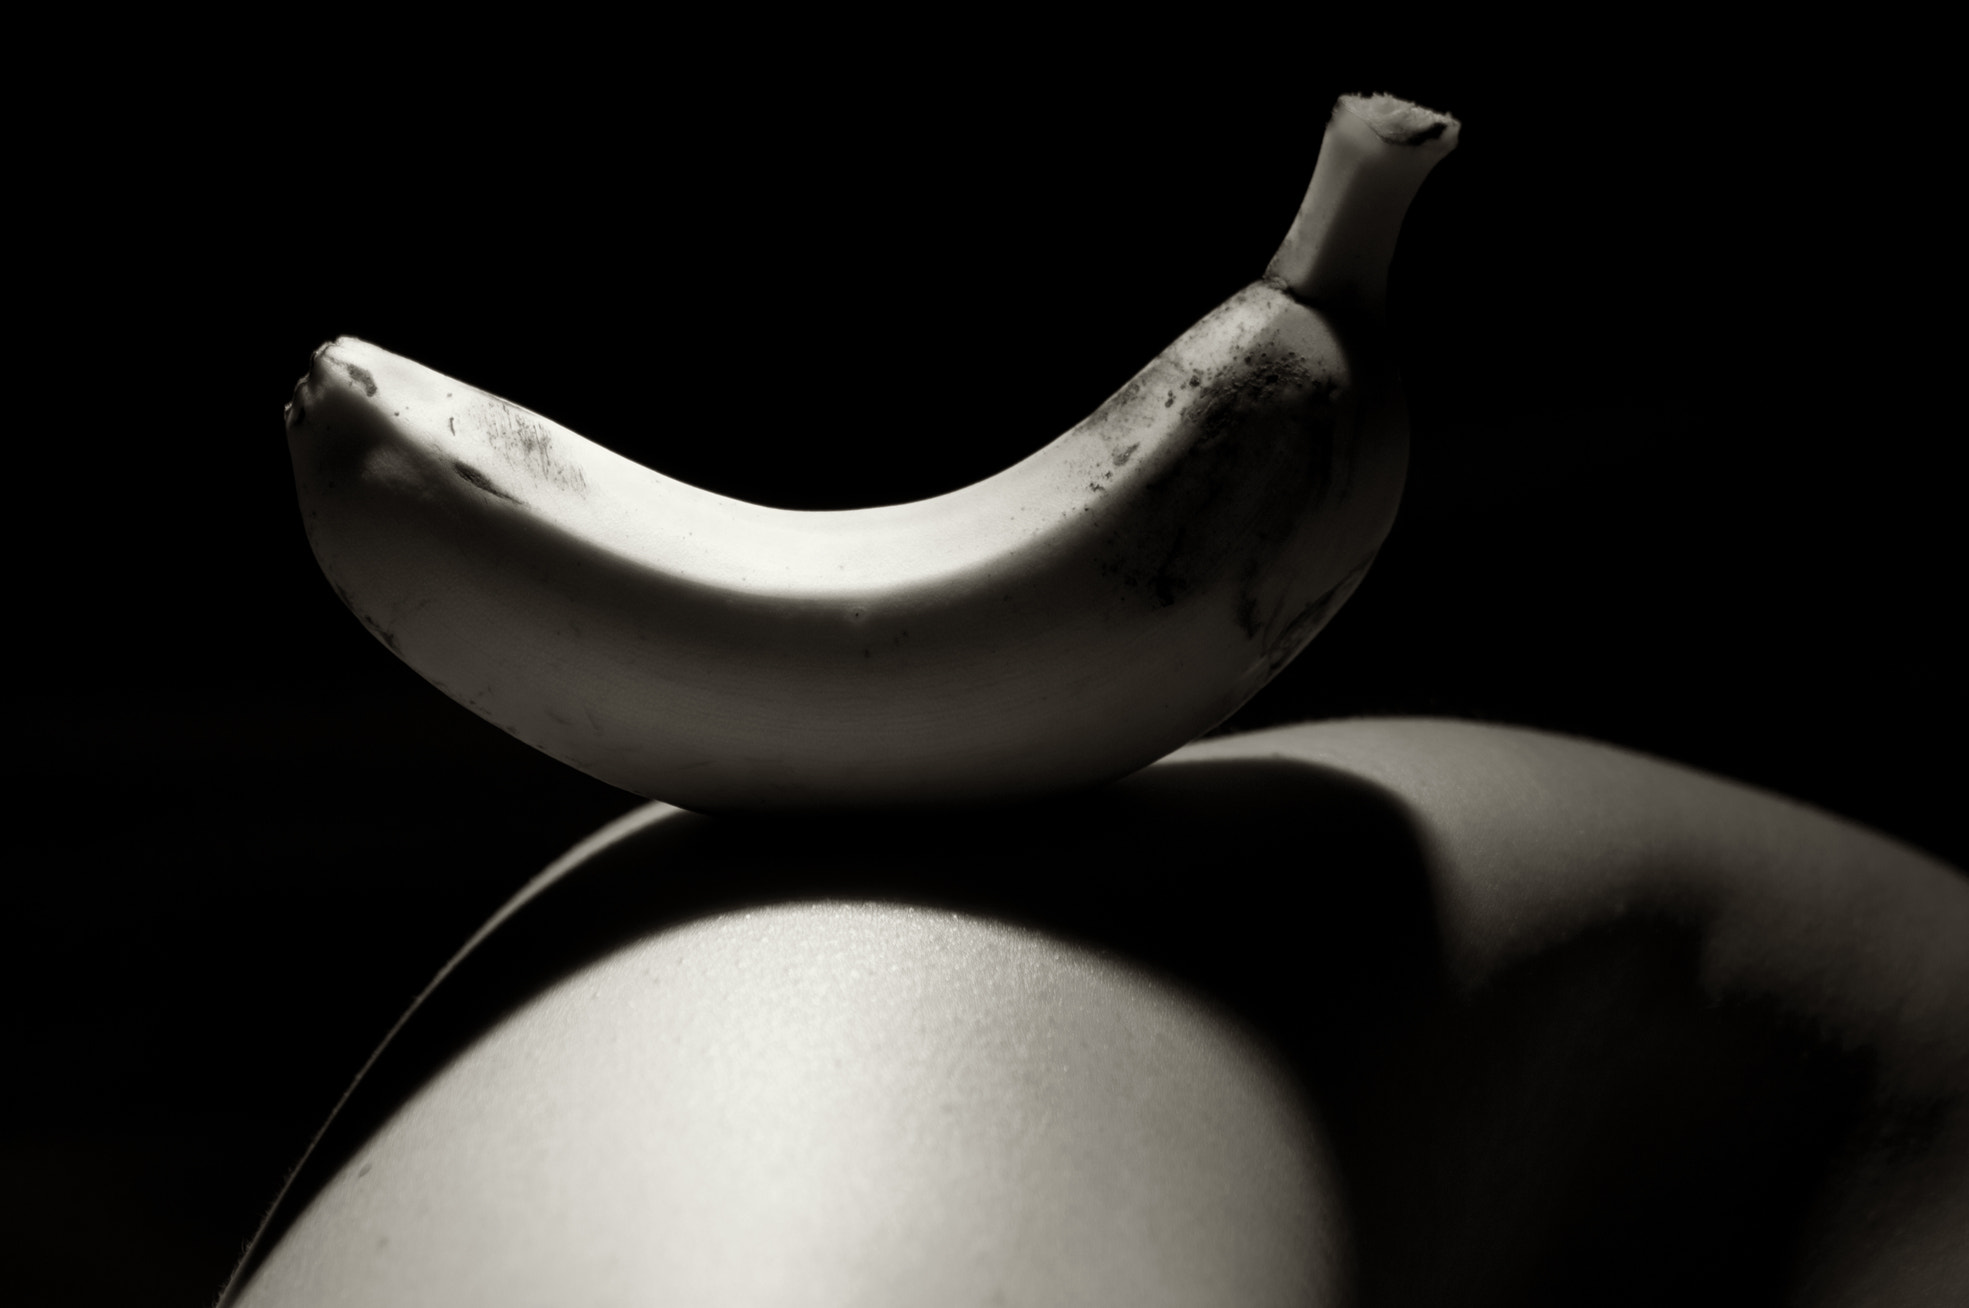 Photograph Fructus corpus, banana by Carlos Enrique Hermosilla on 500px